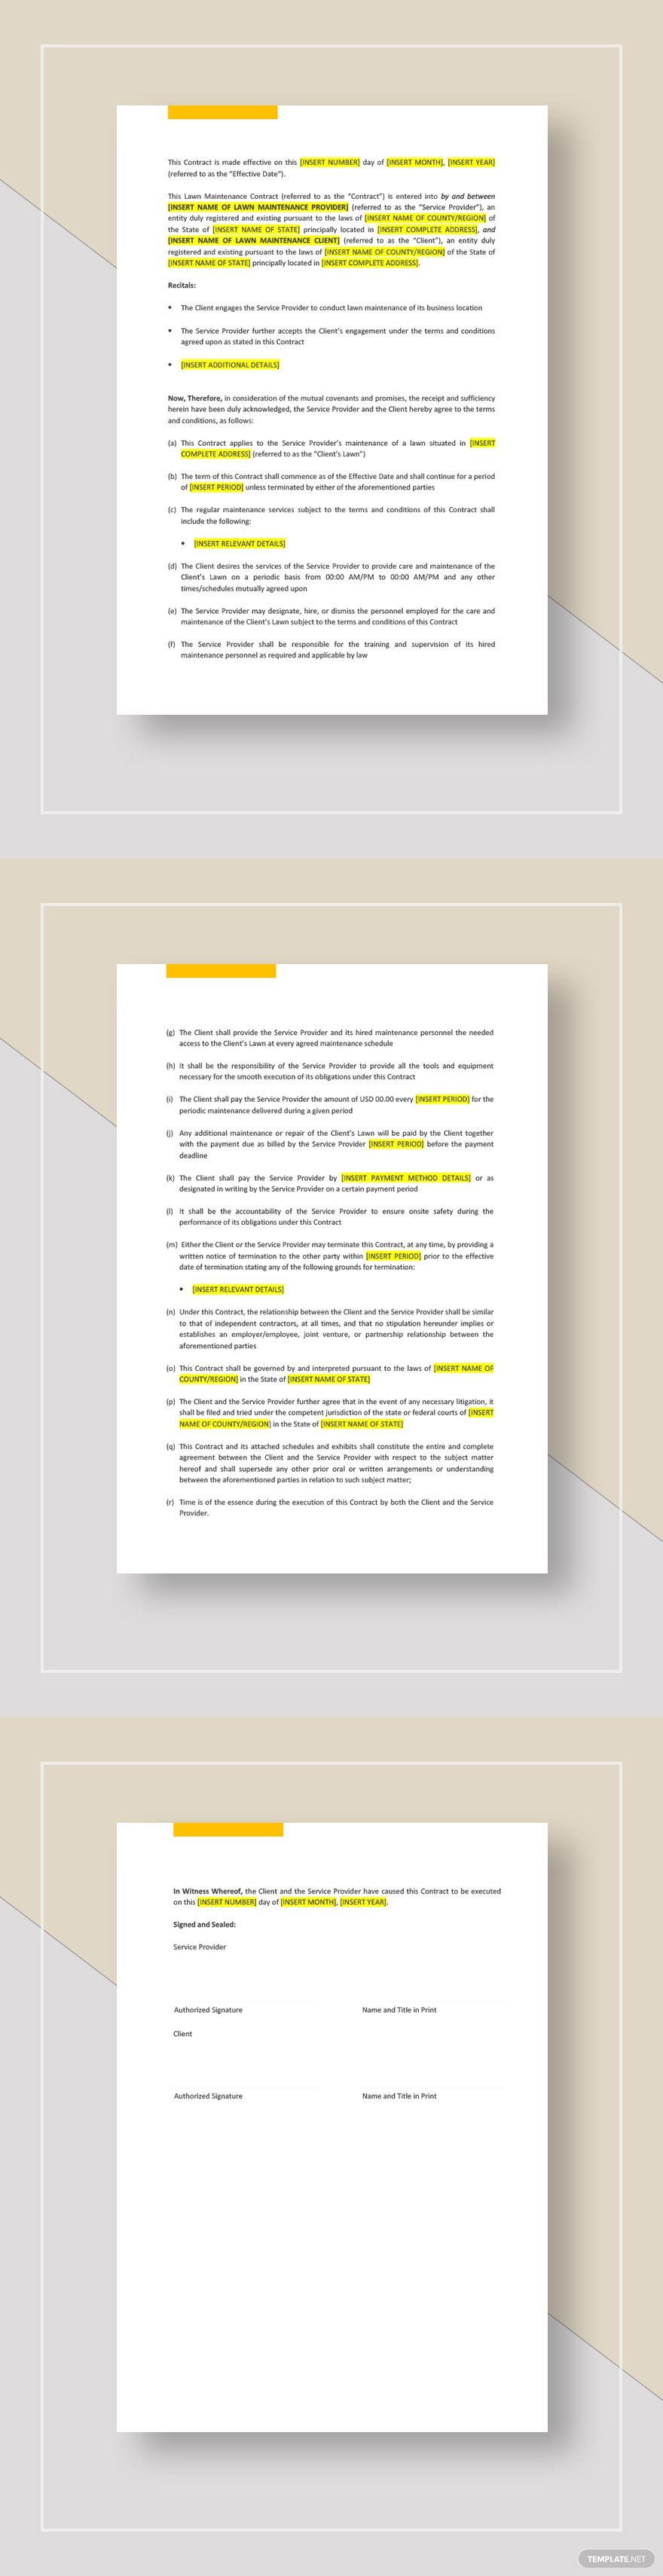 Lawn Maintenance Contract Template Ad Ad Maintenance Lawn Template Contract Lawn Maintenance Contract Template Lawn Care Business